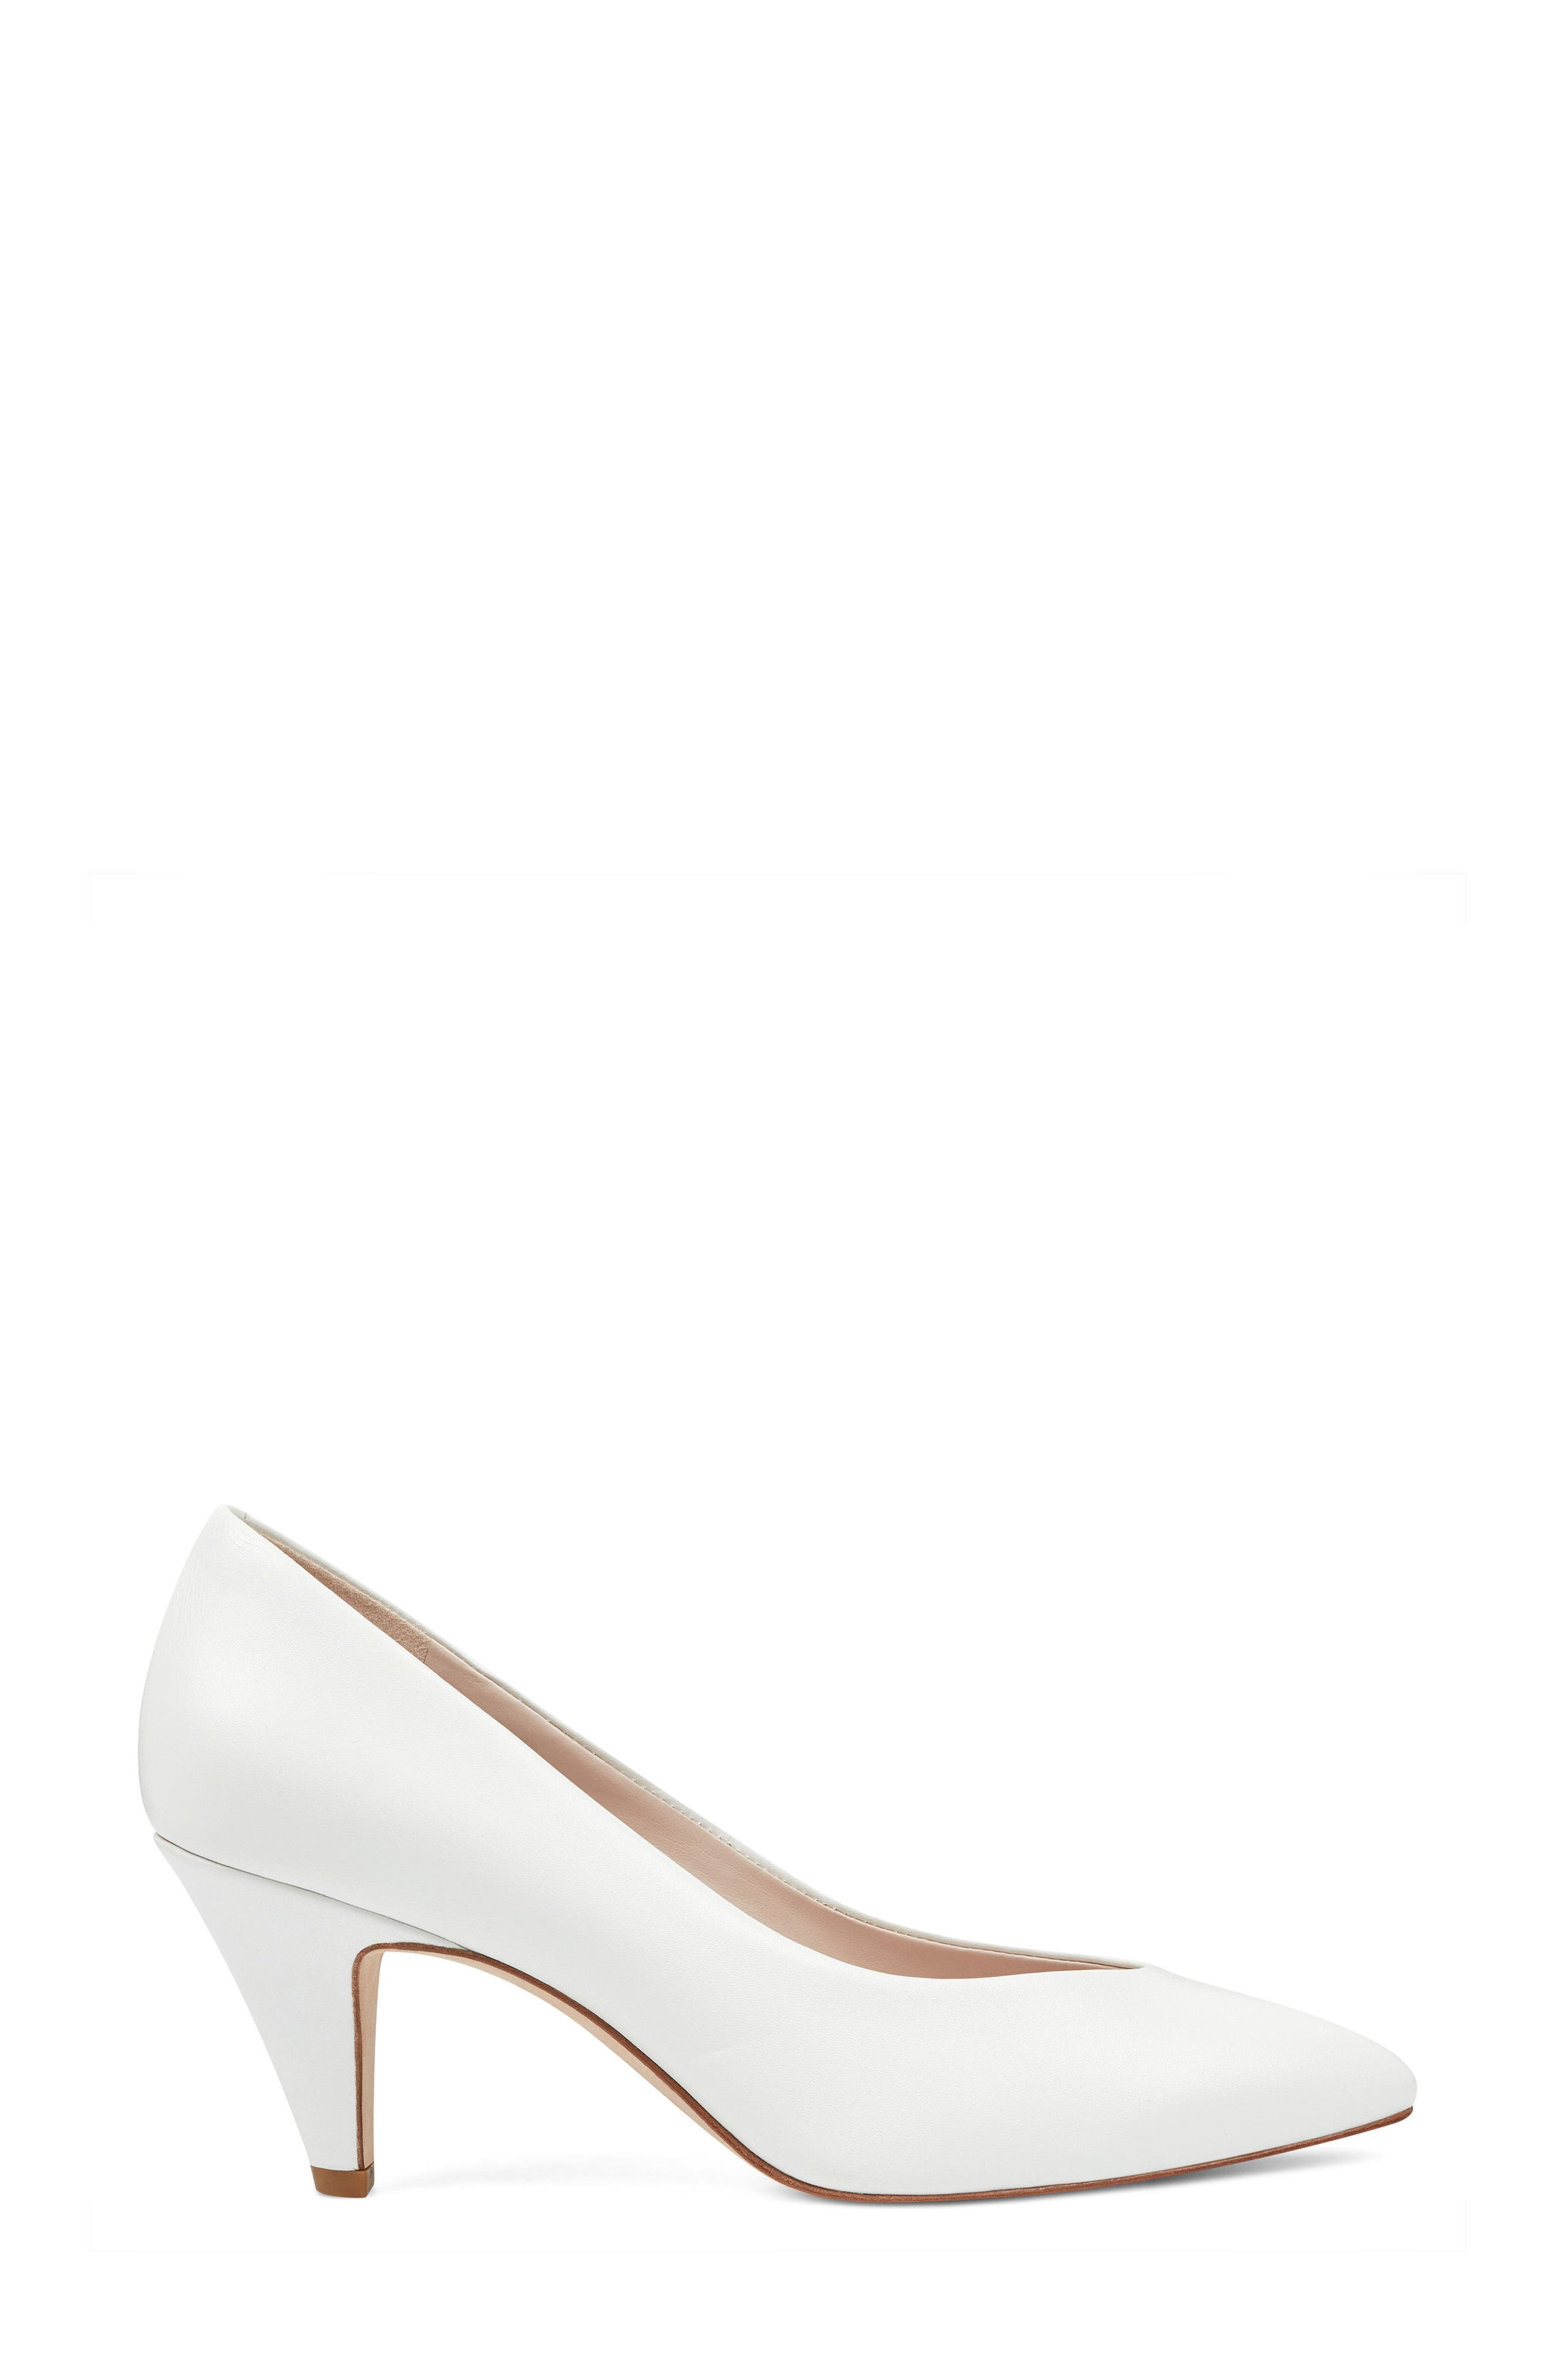 Faith - 40th Anniversary Capsule Collection Pump,                             Alternate thumbnail 3, color,                             White Leather